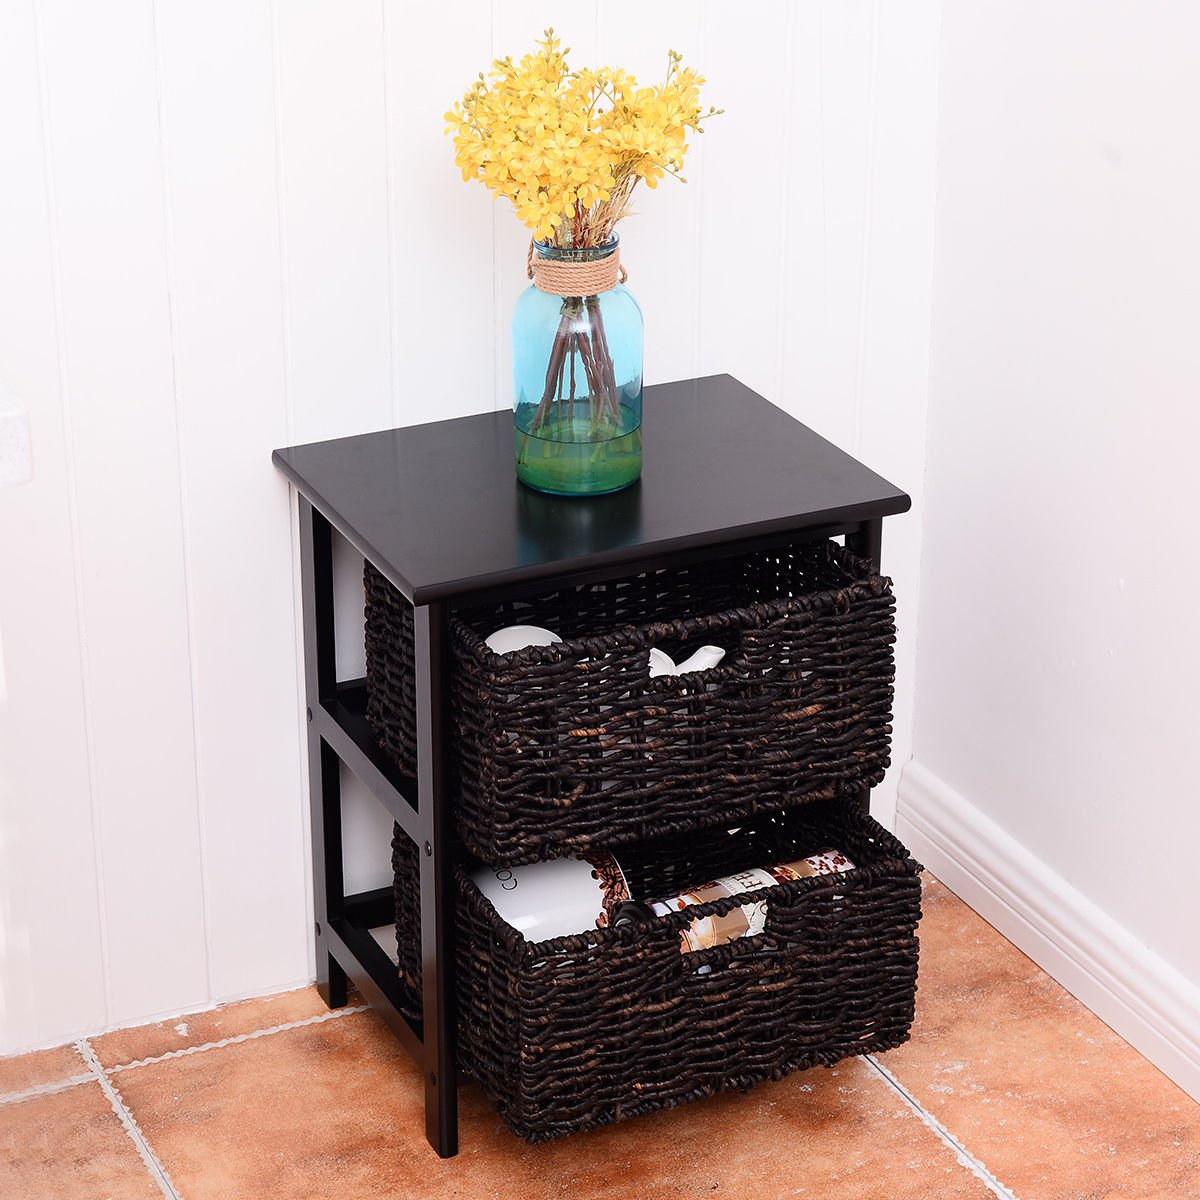 New Wood End Accent Table Home Furniture Living Room Night Stand W/2 Storage Baskets